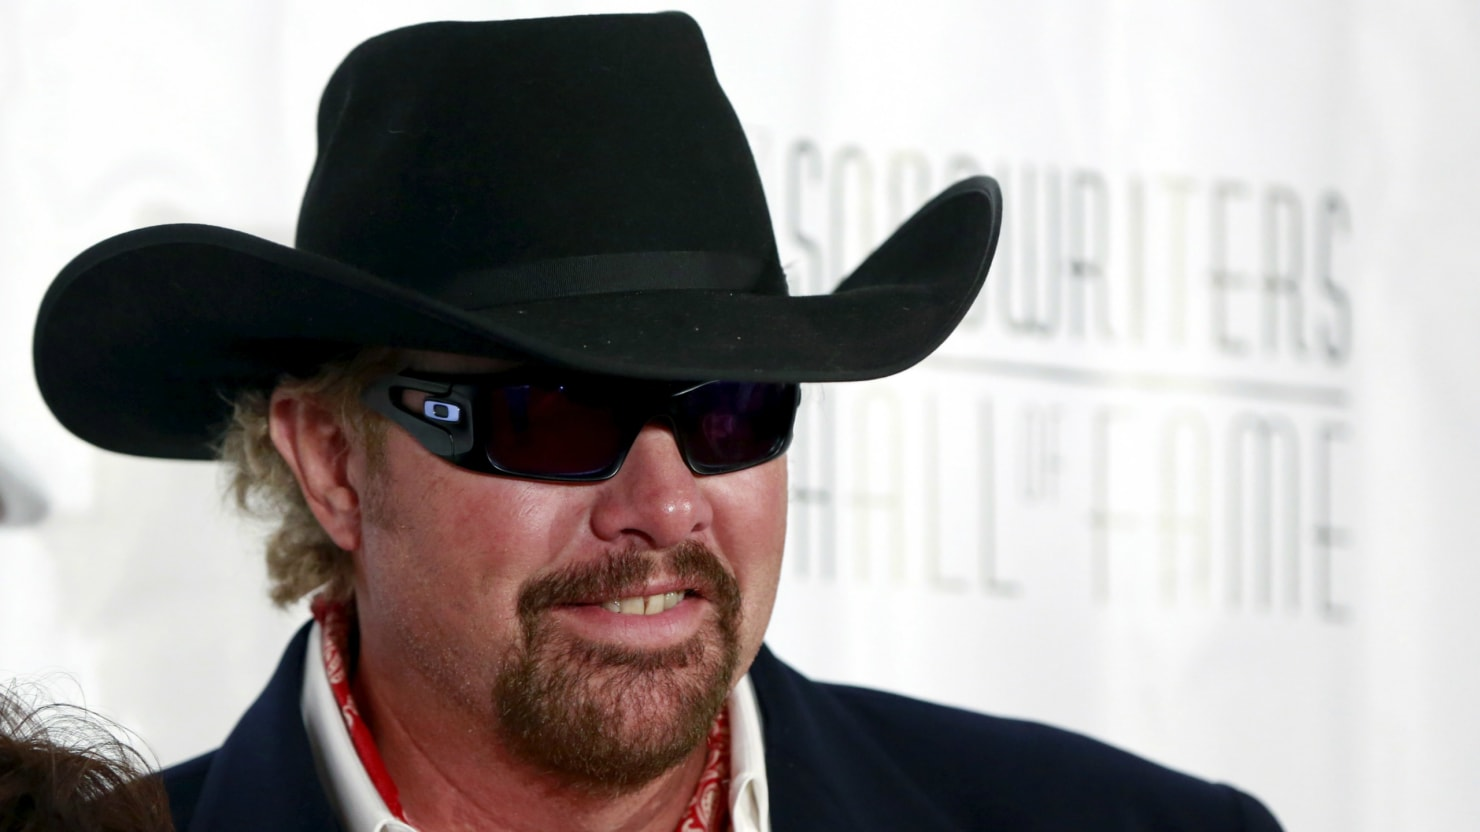 Thedailybeast toby keith inauguration